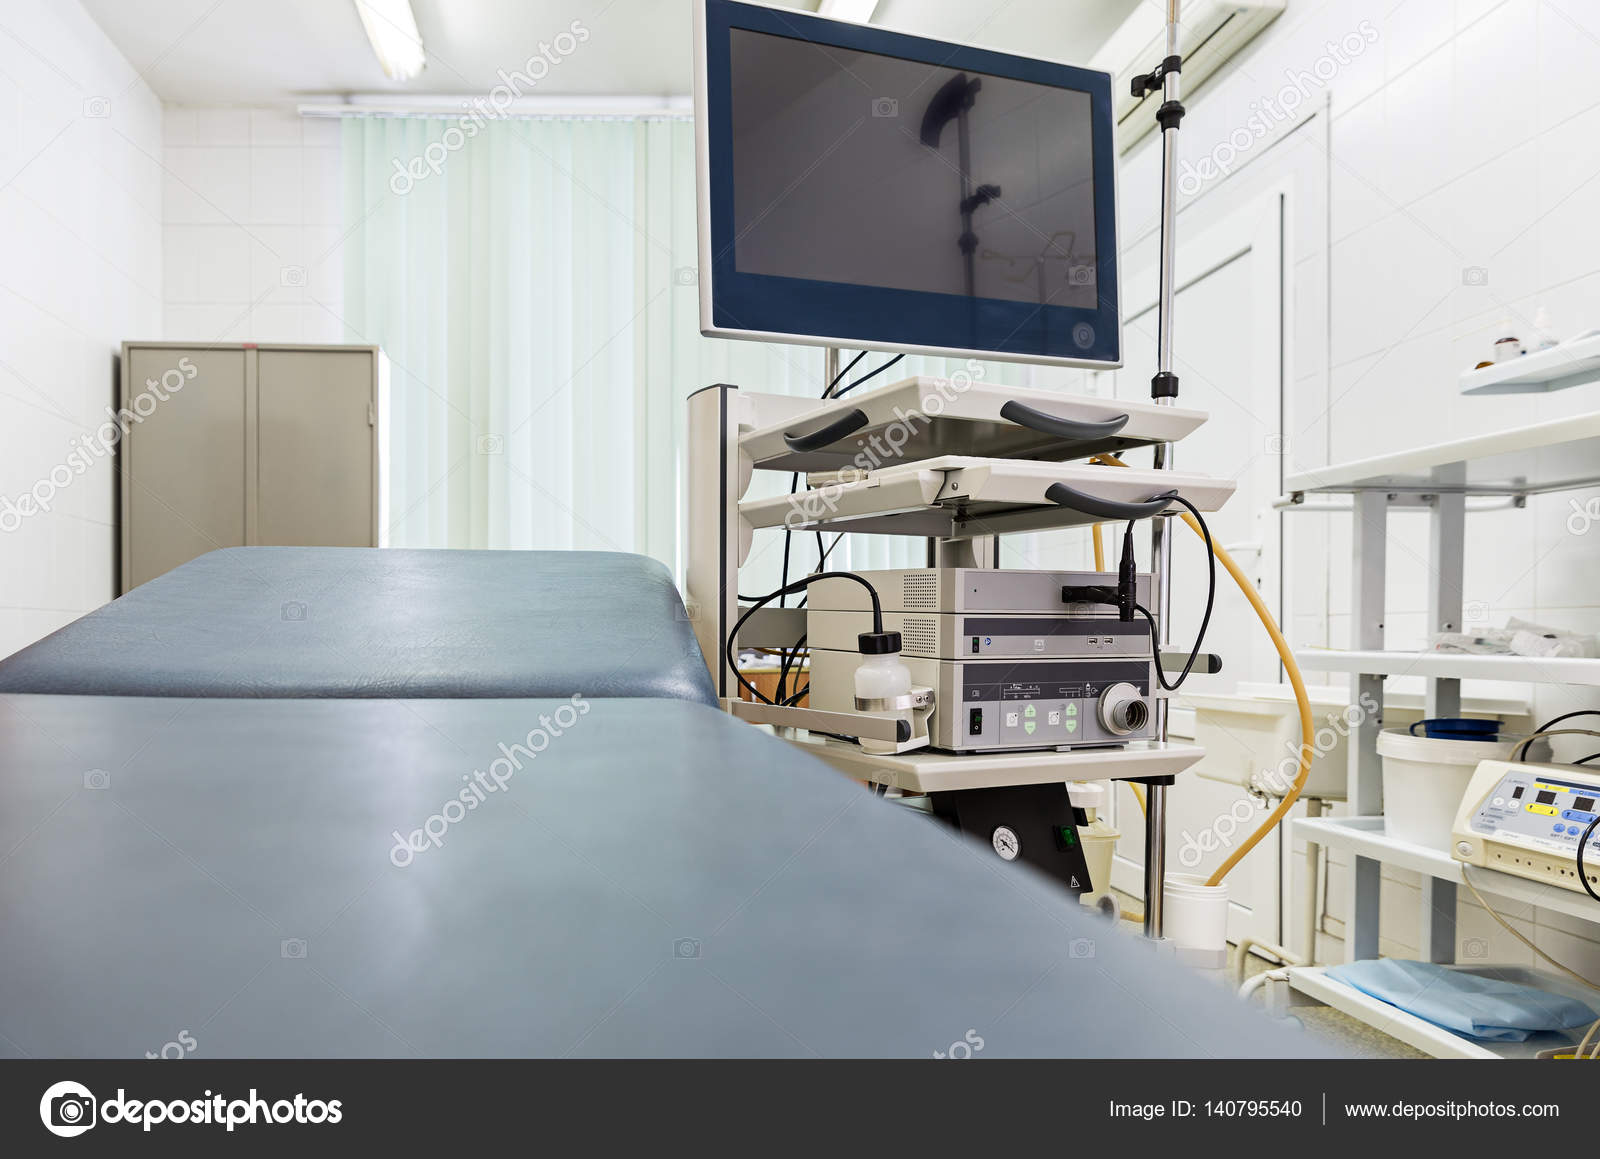 Operating Room Lights Price